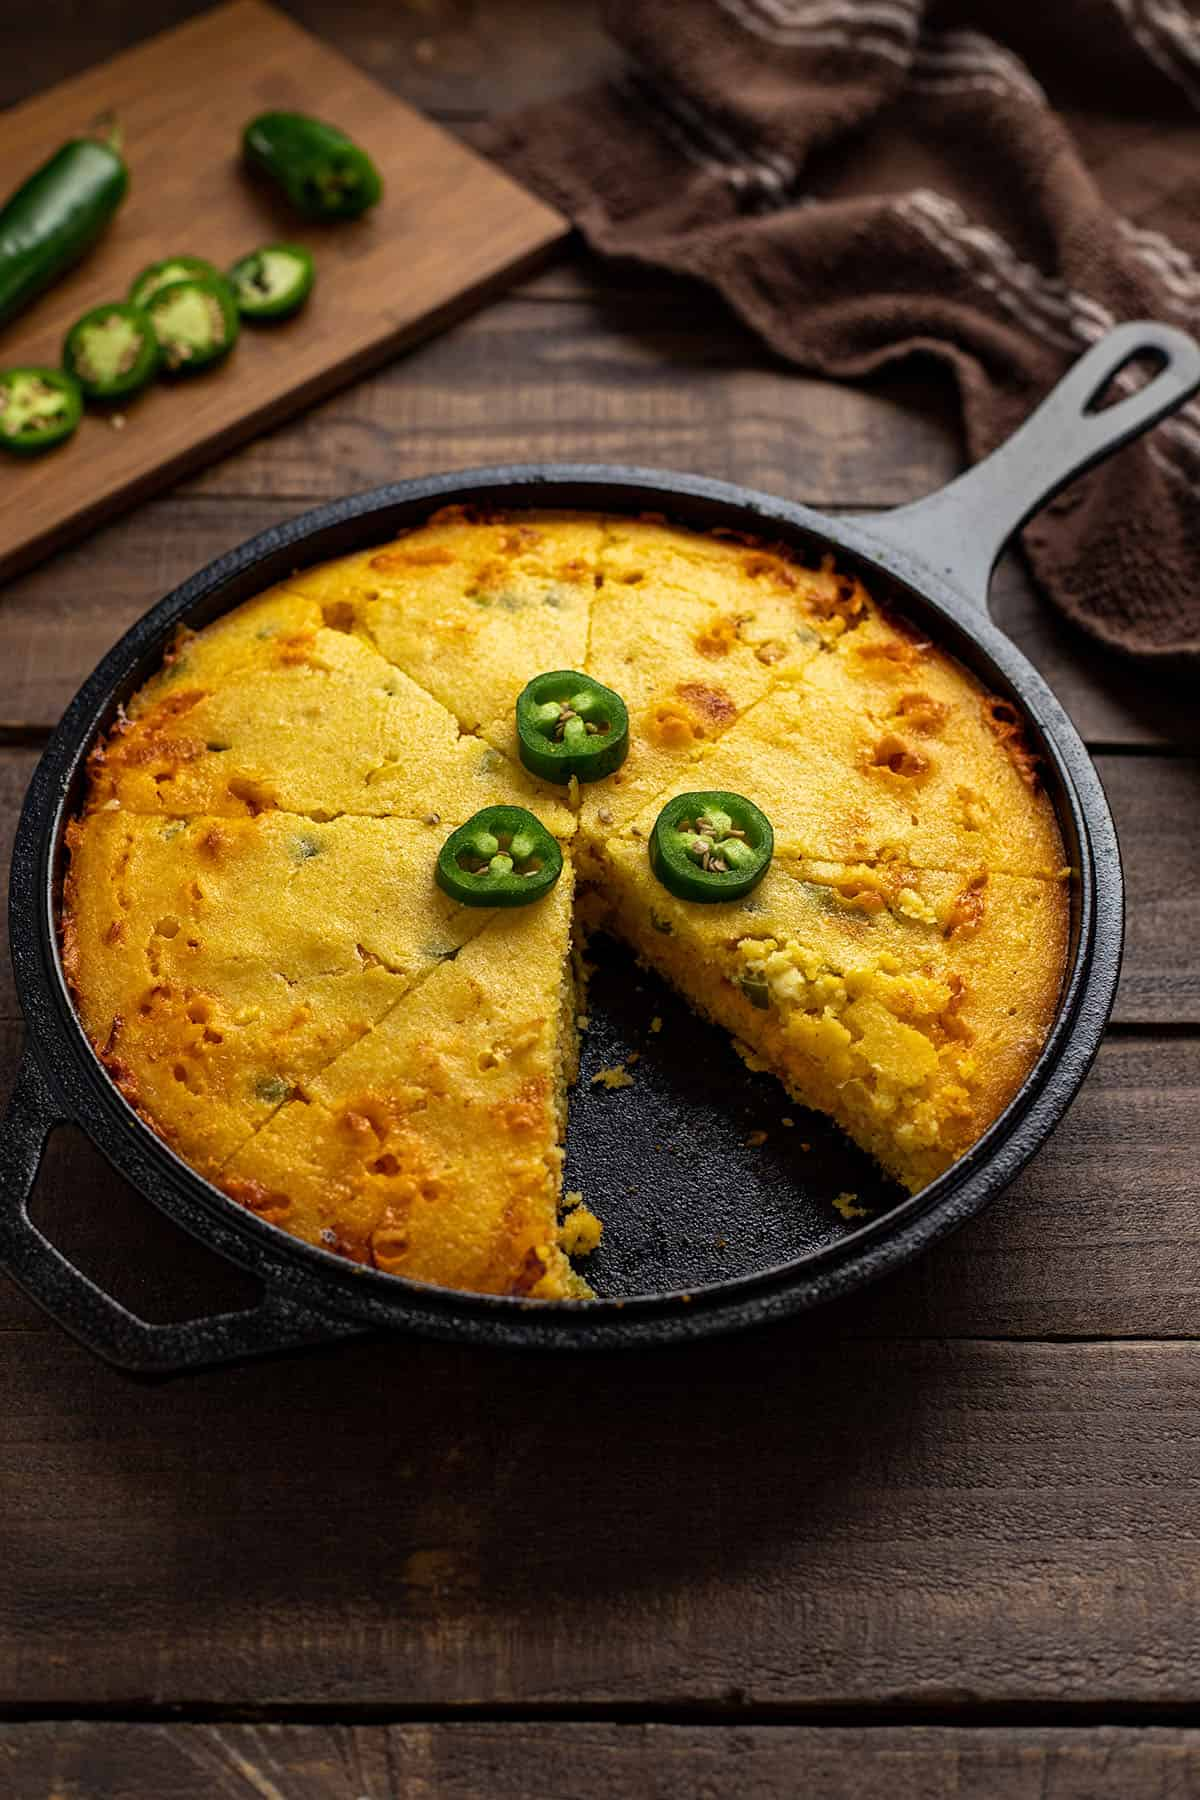 baked cornbread with 3 jalapeno slices on top in cast iron skillet with one slice removed